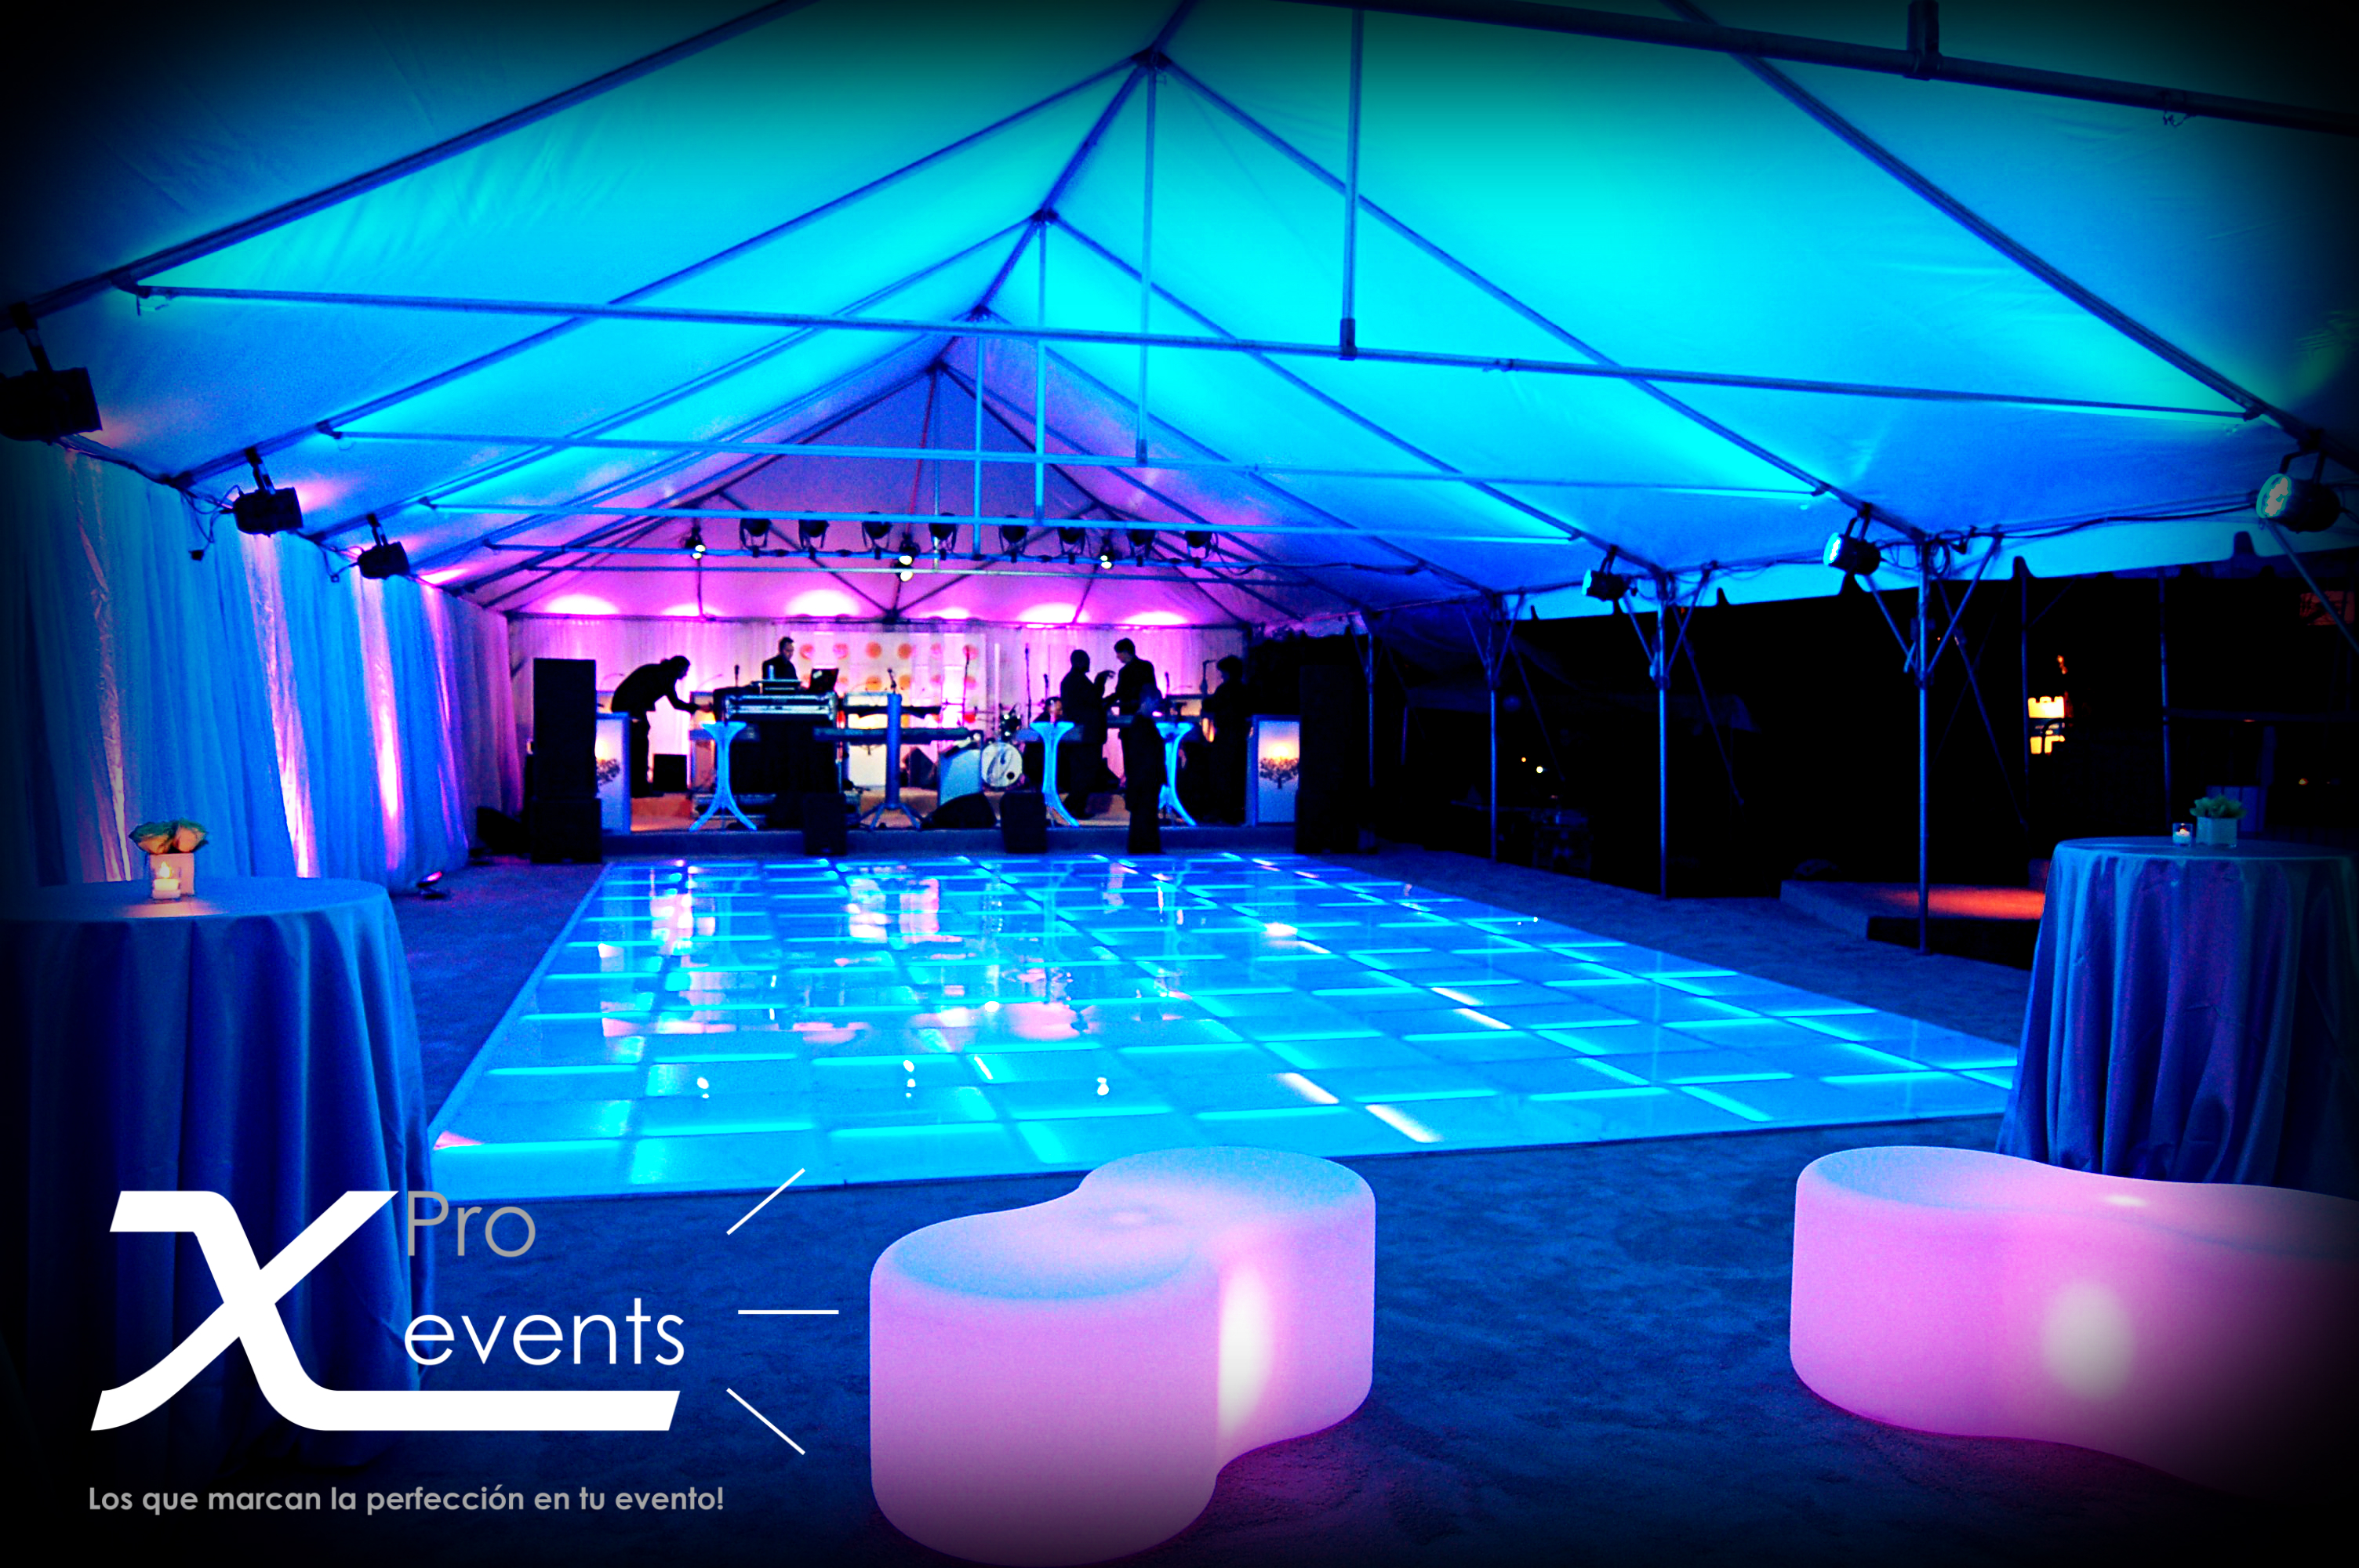 X Pro events - 809-846-3784 - Pista de baile LED - Asientos de LED - Iluminacion